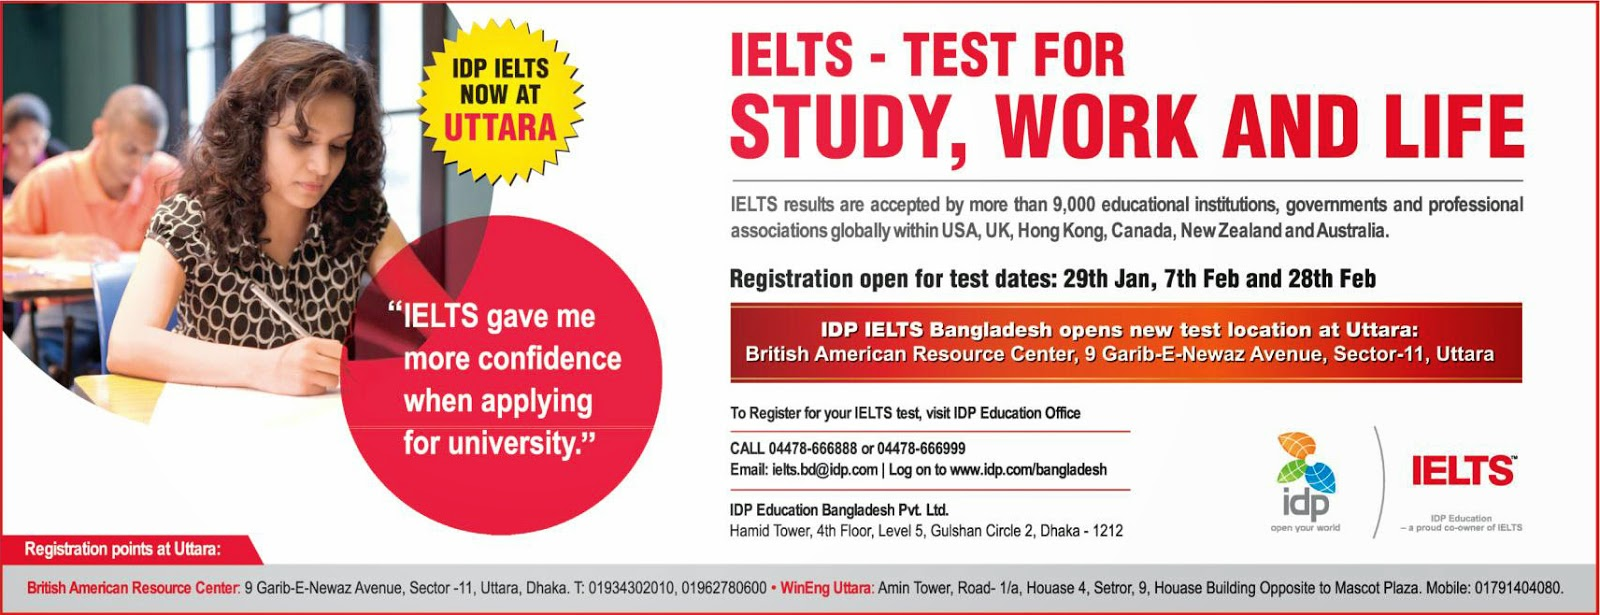 Energian Saasto—These Idp Ielts Exam Schedule Dhaka